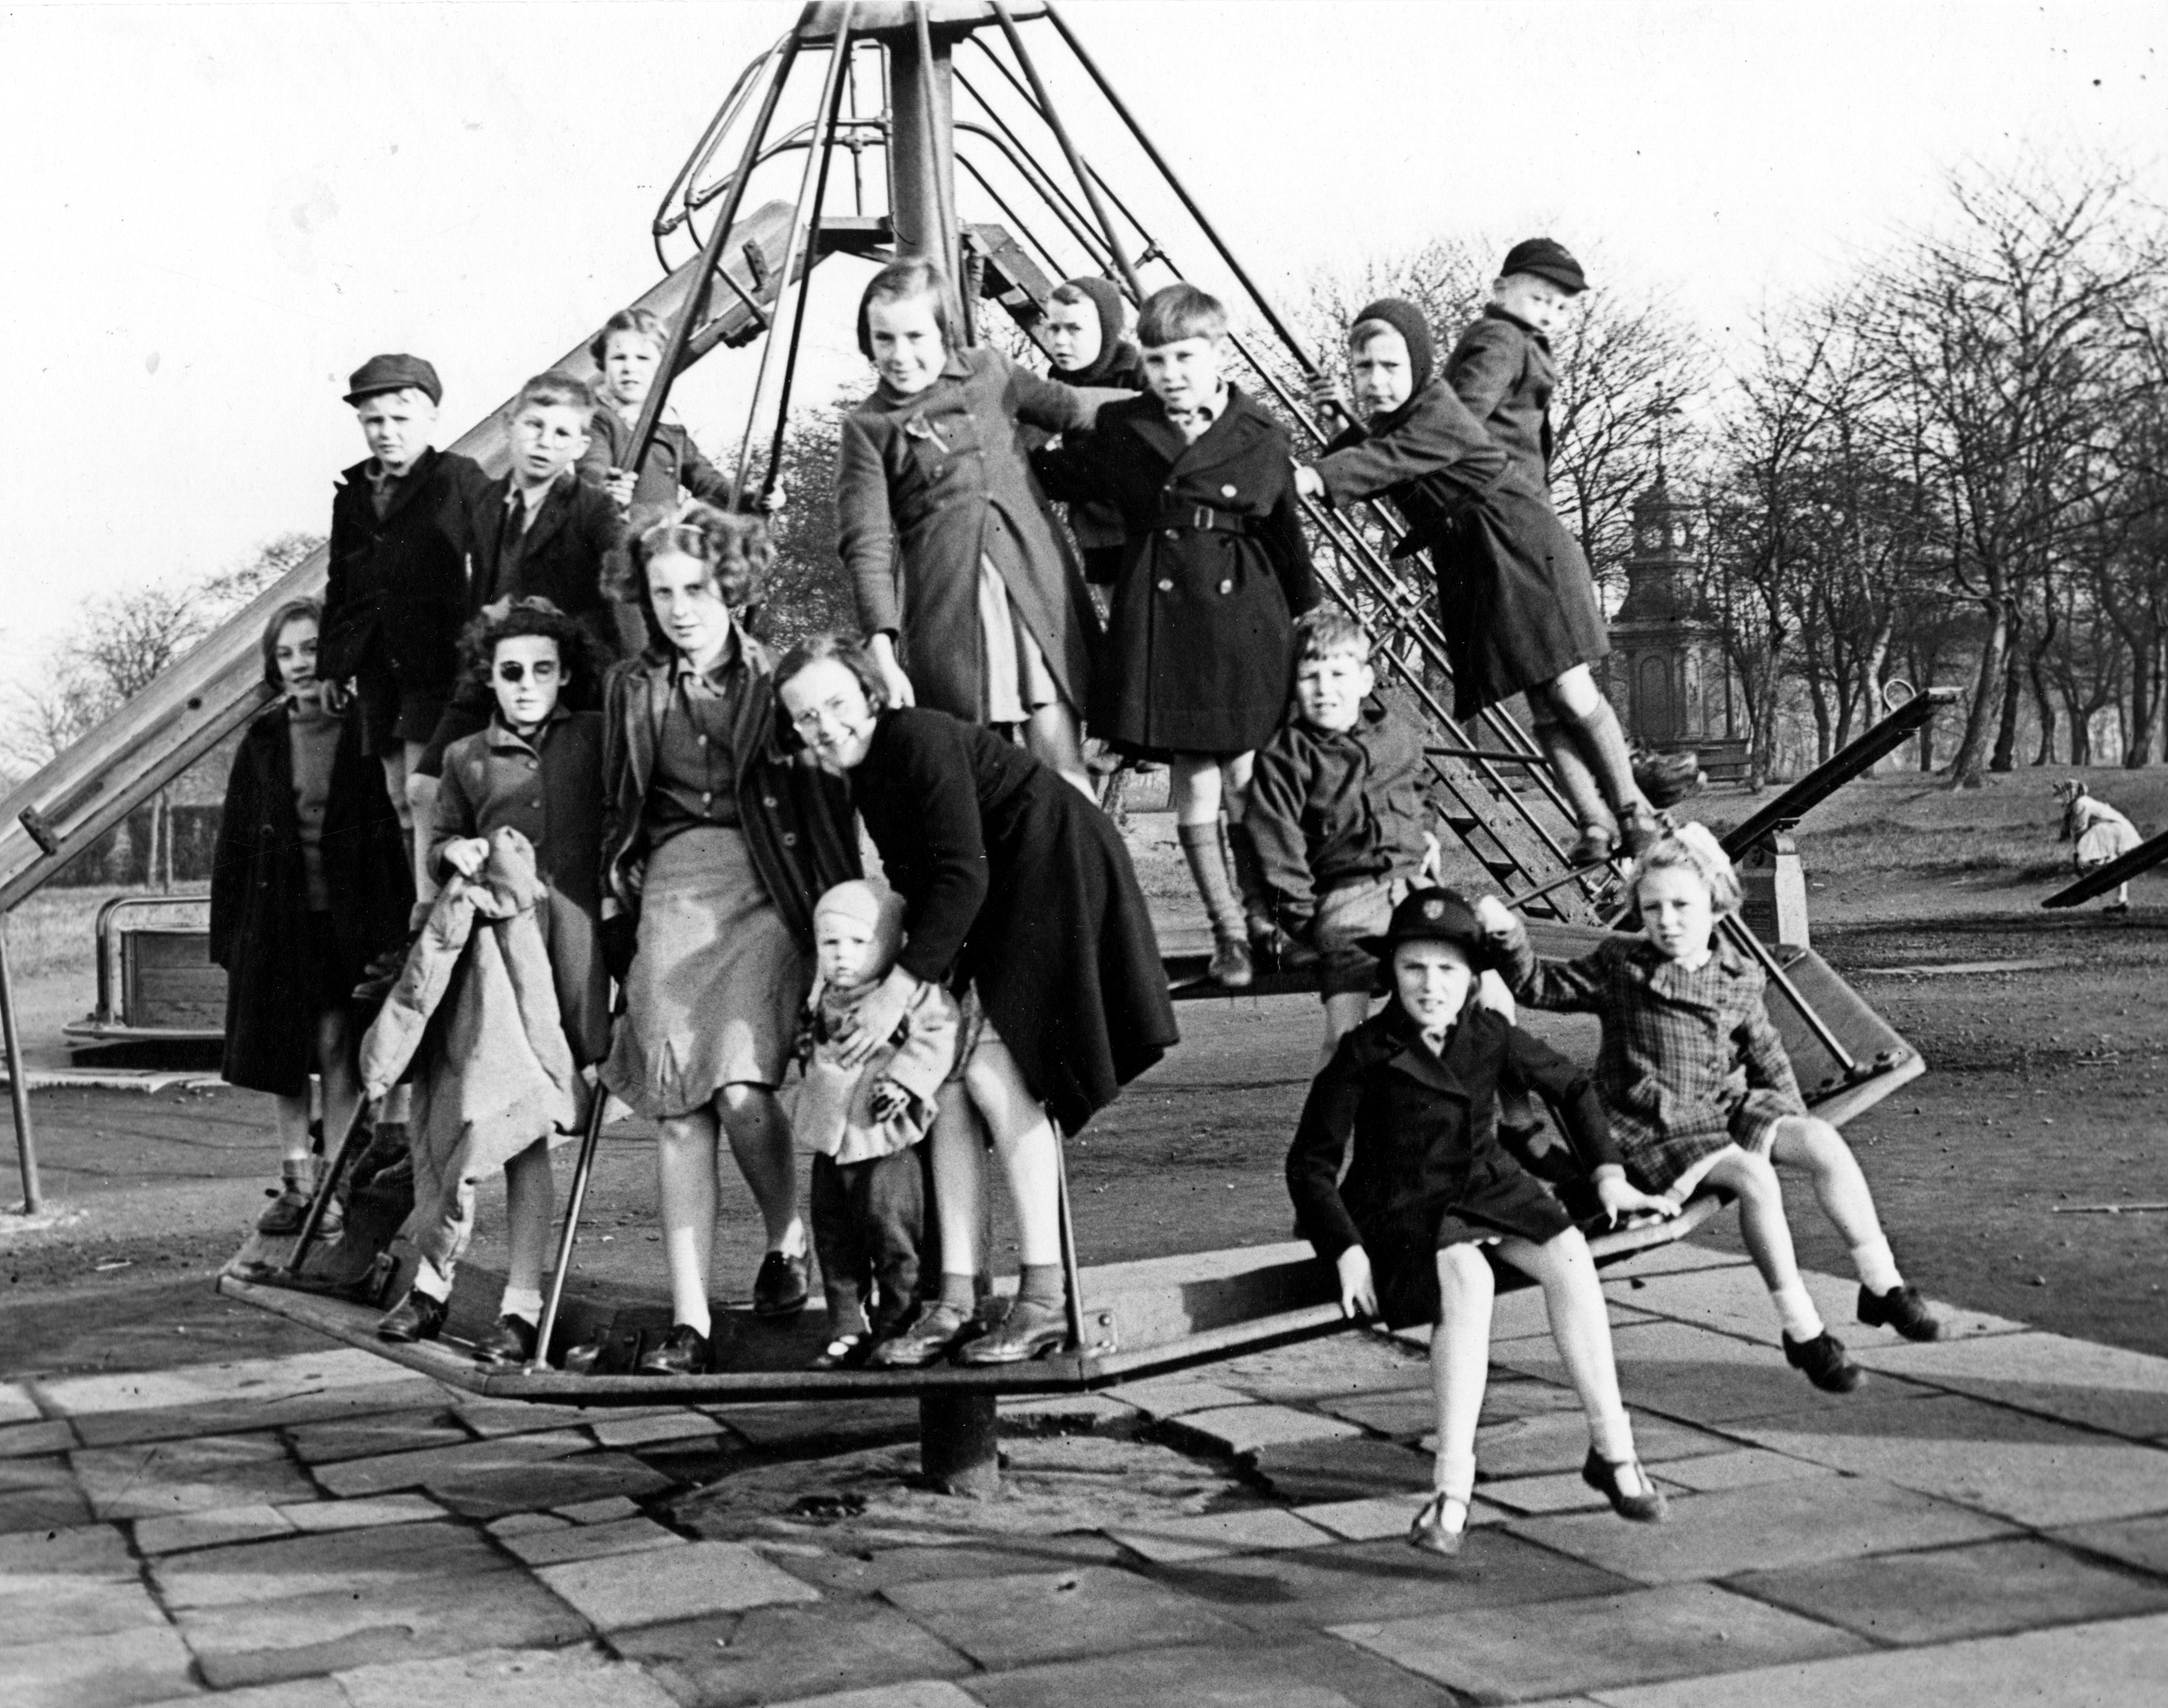 Children crowding onto a roundabout in Woodhouse Moor playground.  Paving slabs are underneath the roundabout.